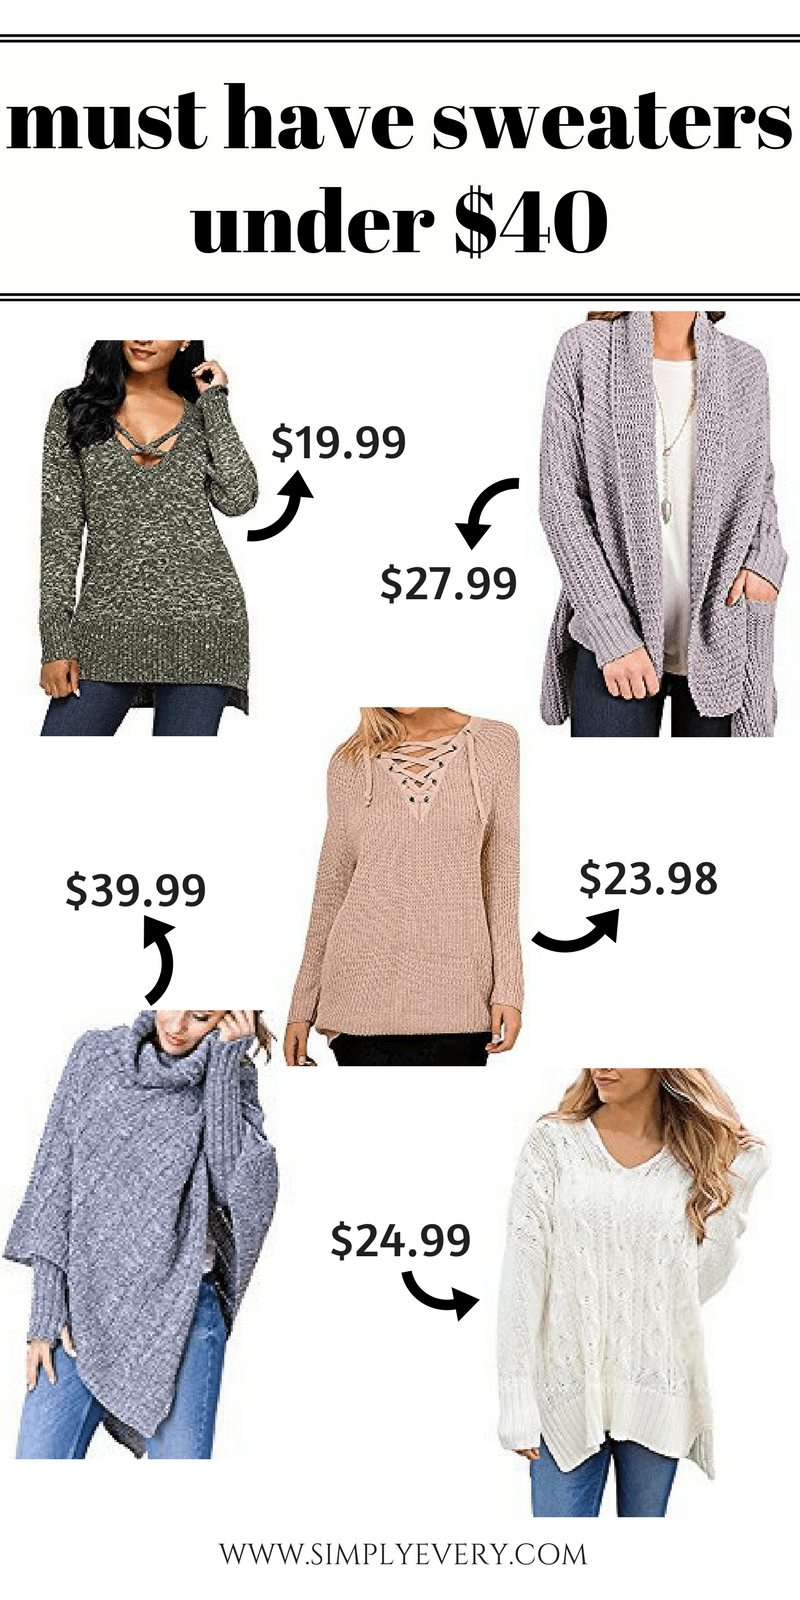 must have sweaters under forty dollars, winter fashion, winter style, cozy sweaters